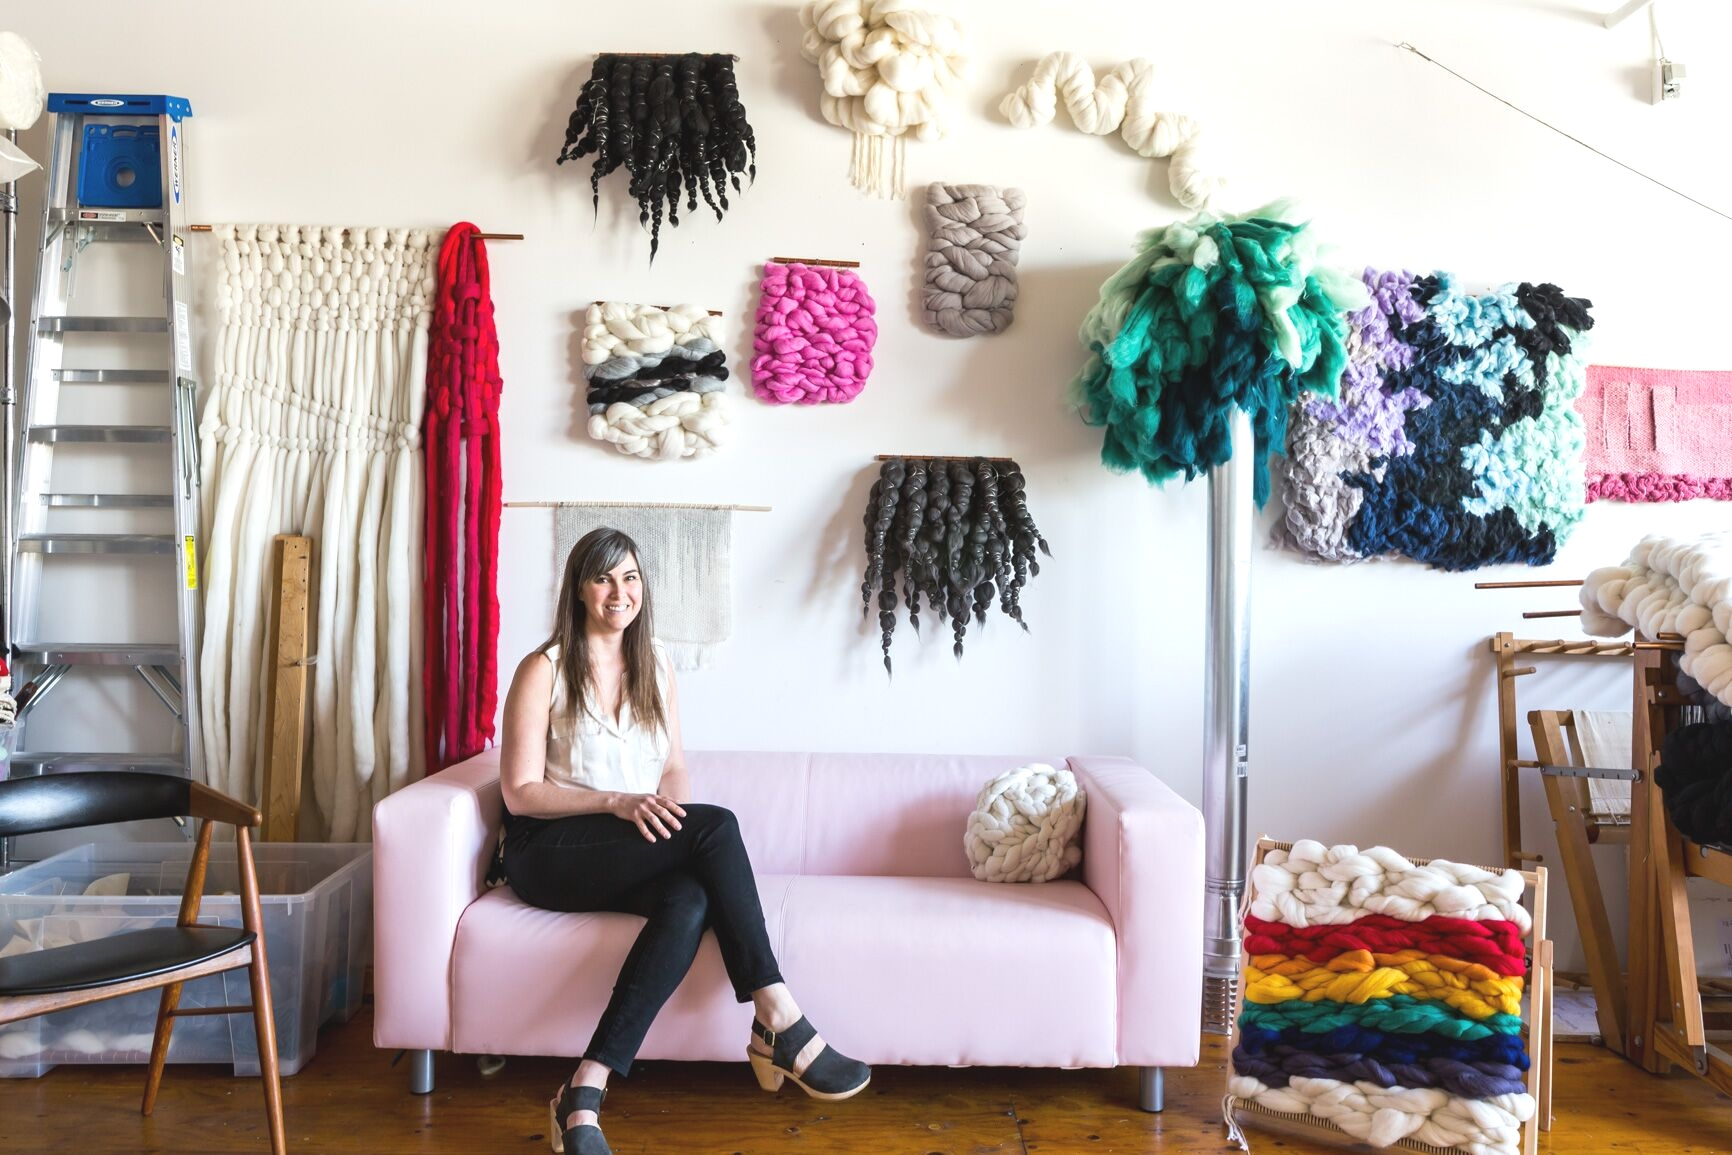 7x7 | April 2017   Inside the Instagram-Worthy House of Oakland Fiber Artist Meghan Shimek